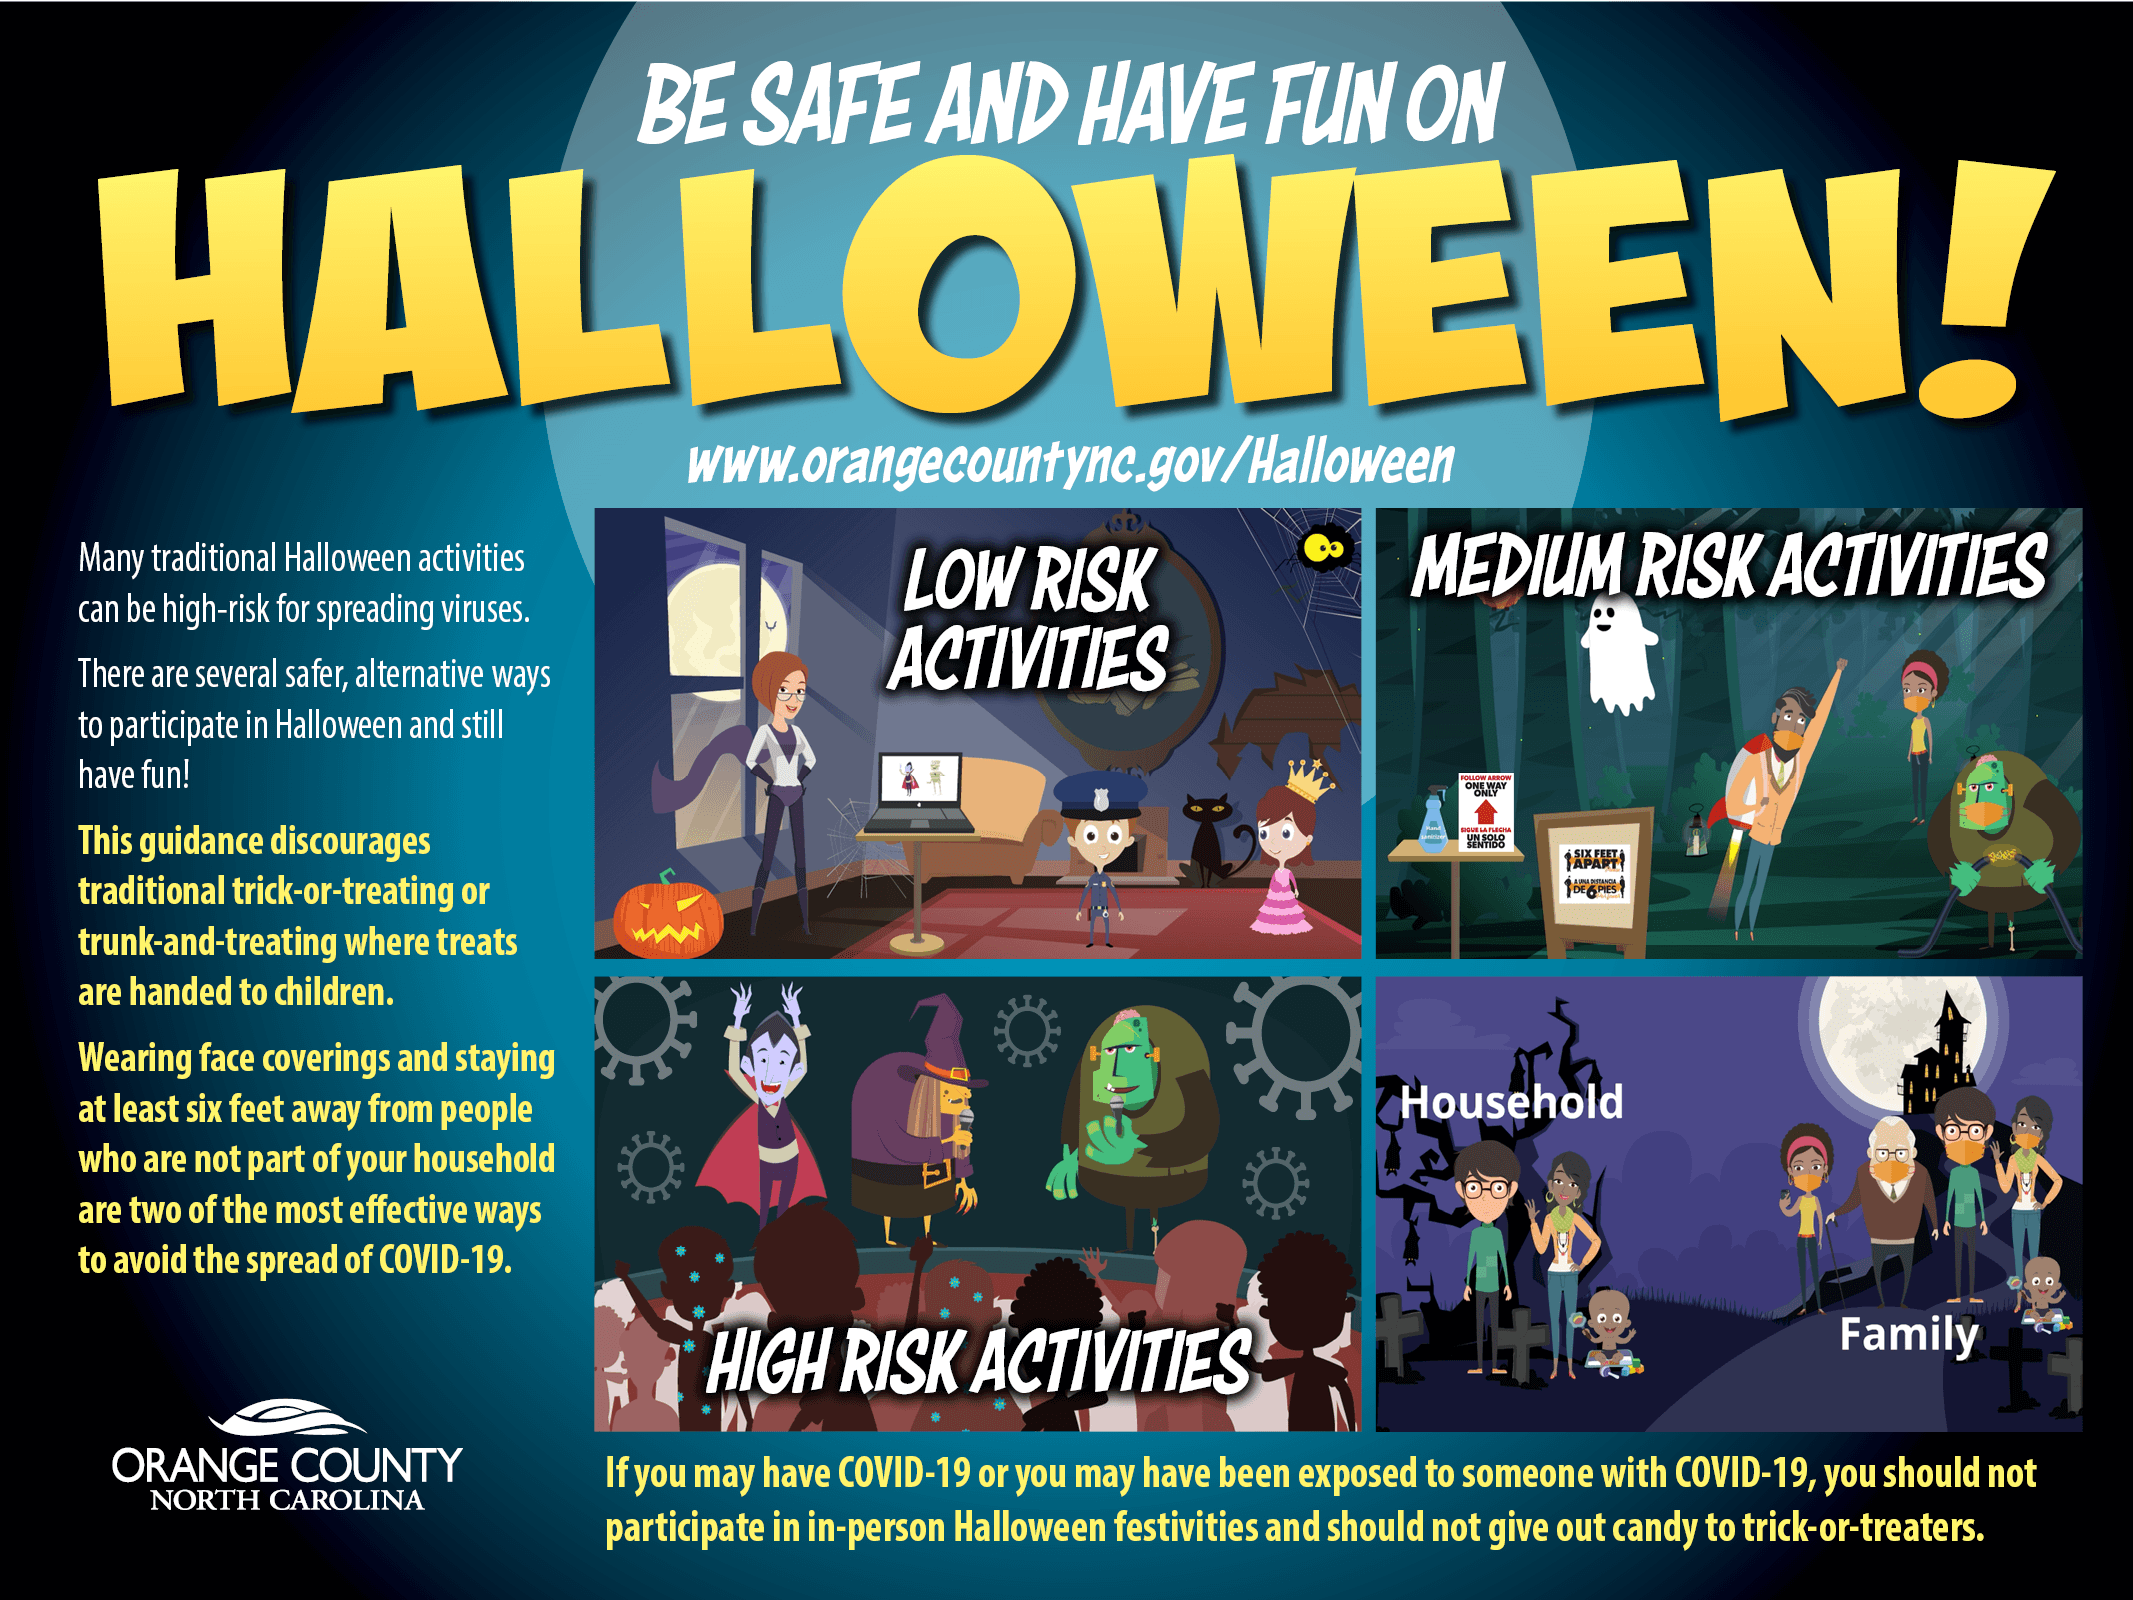 Be safe and enjoy halloween